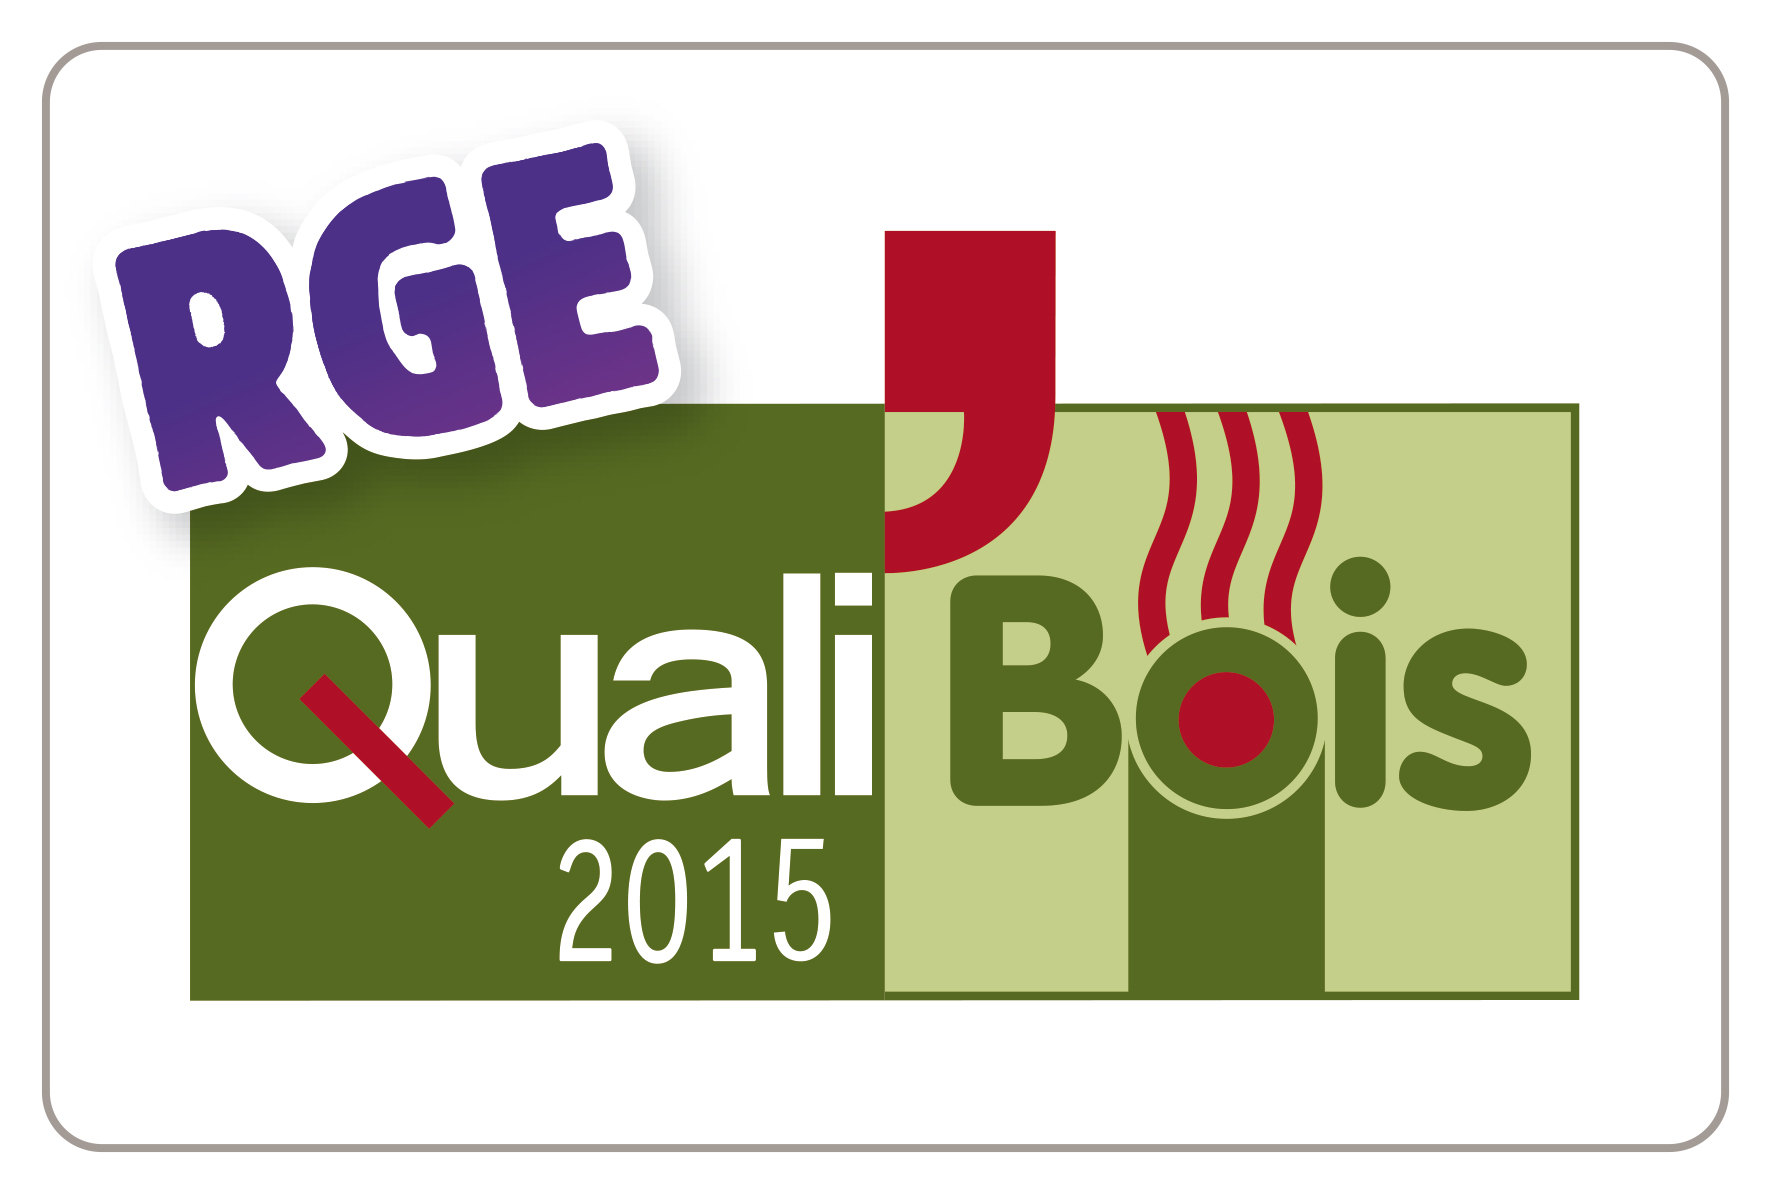 logo-Qualibois-2015-RGE-copie